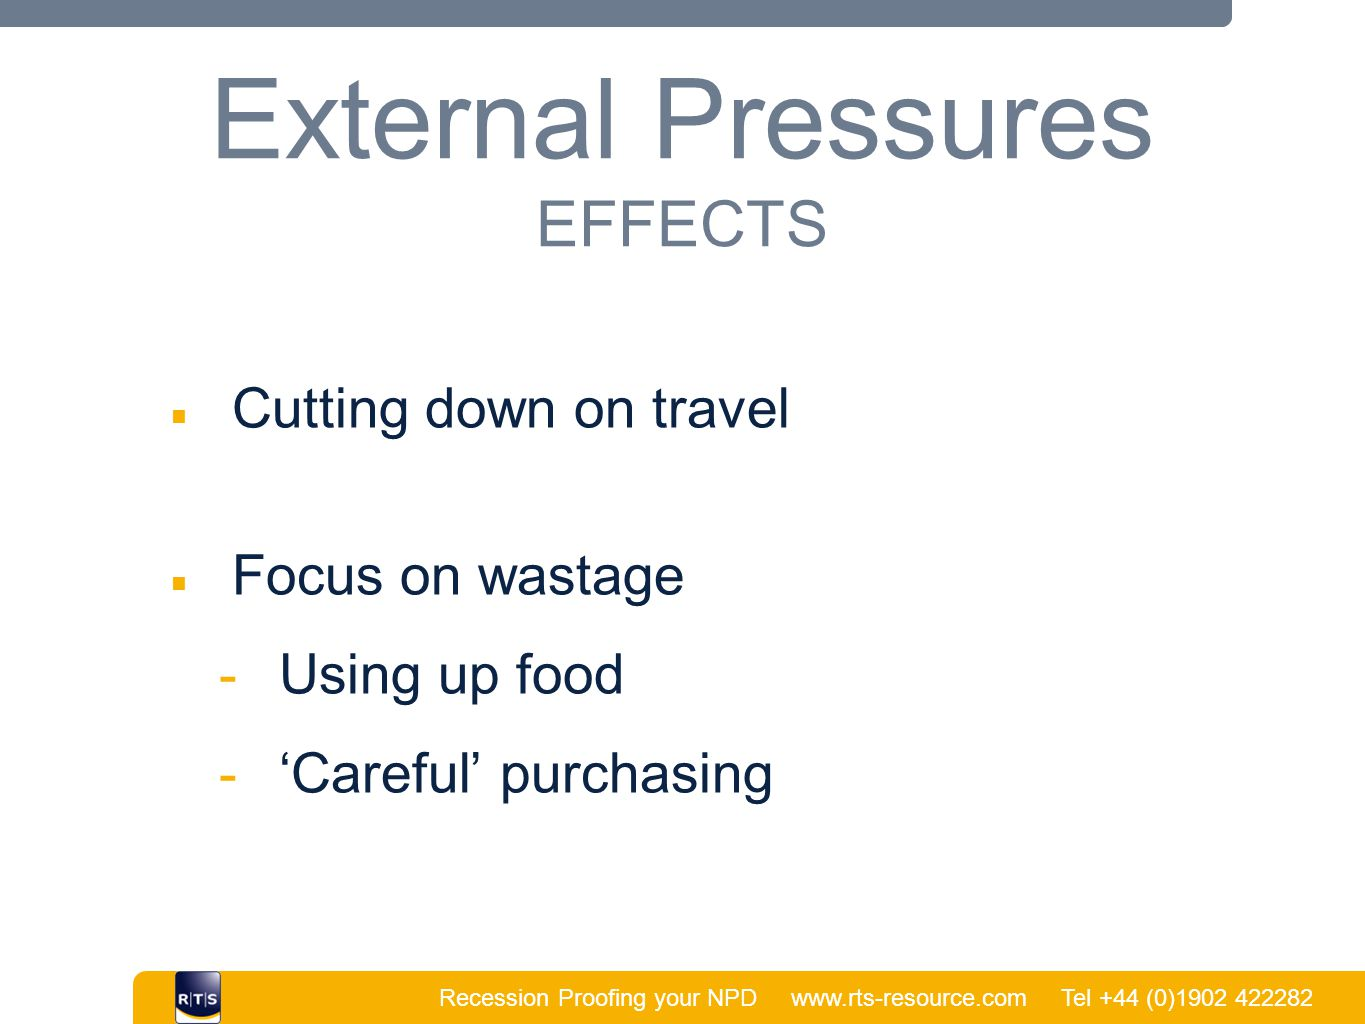 Recession Proofing your NPD www.rts-resource.com Tel +44 (0)1902 422282 | External Pressures EFFECTS ■ Cutting down on travel ■ Focus on wastage  Usi